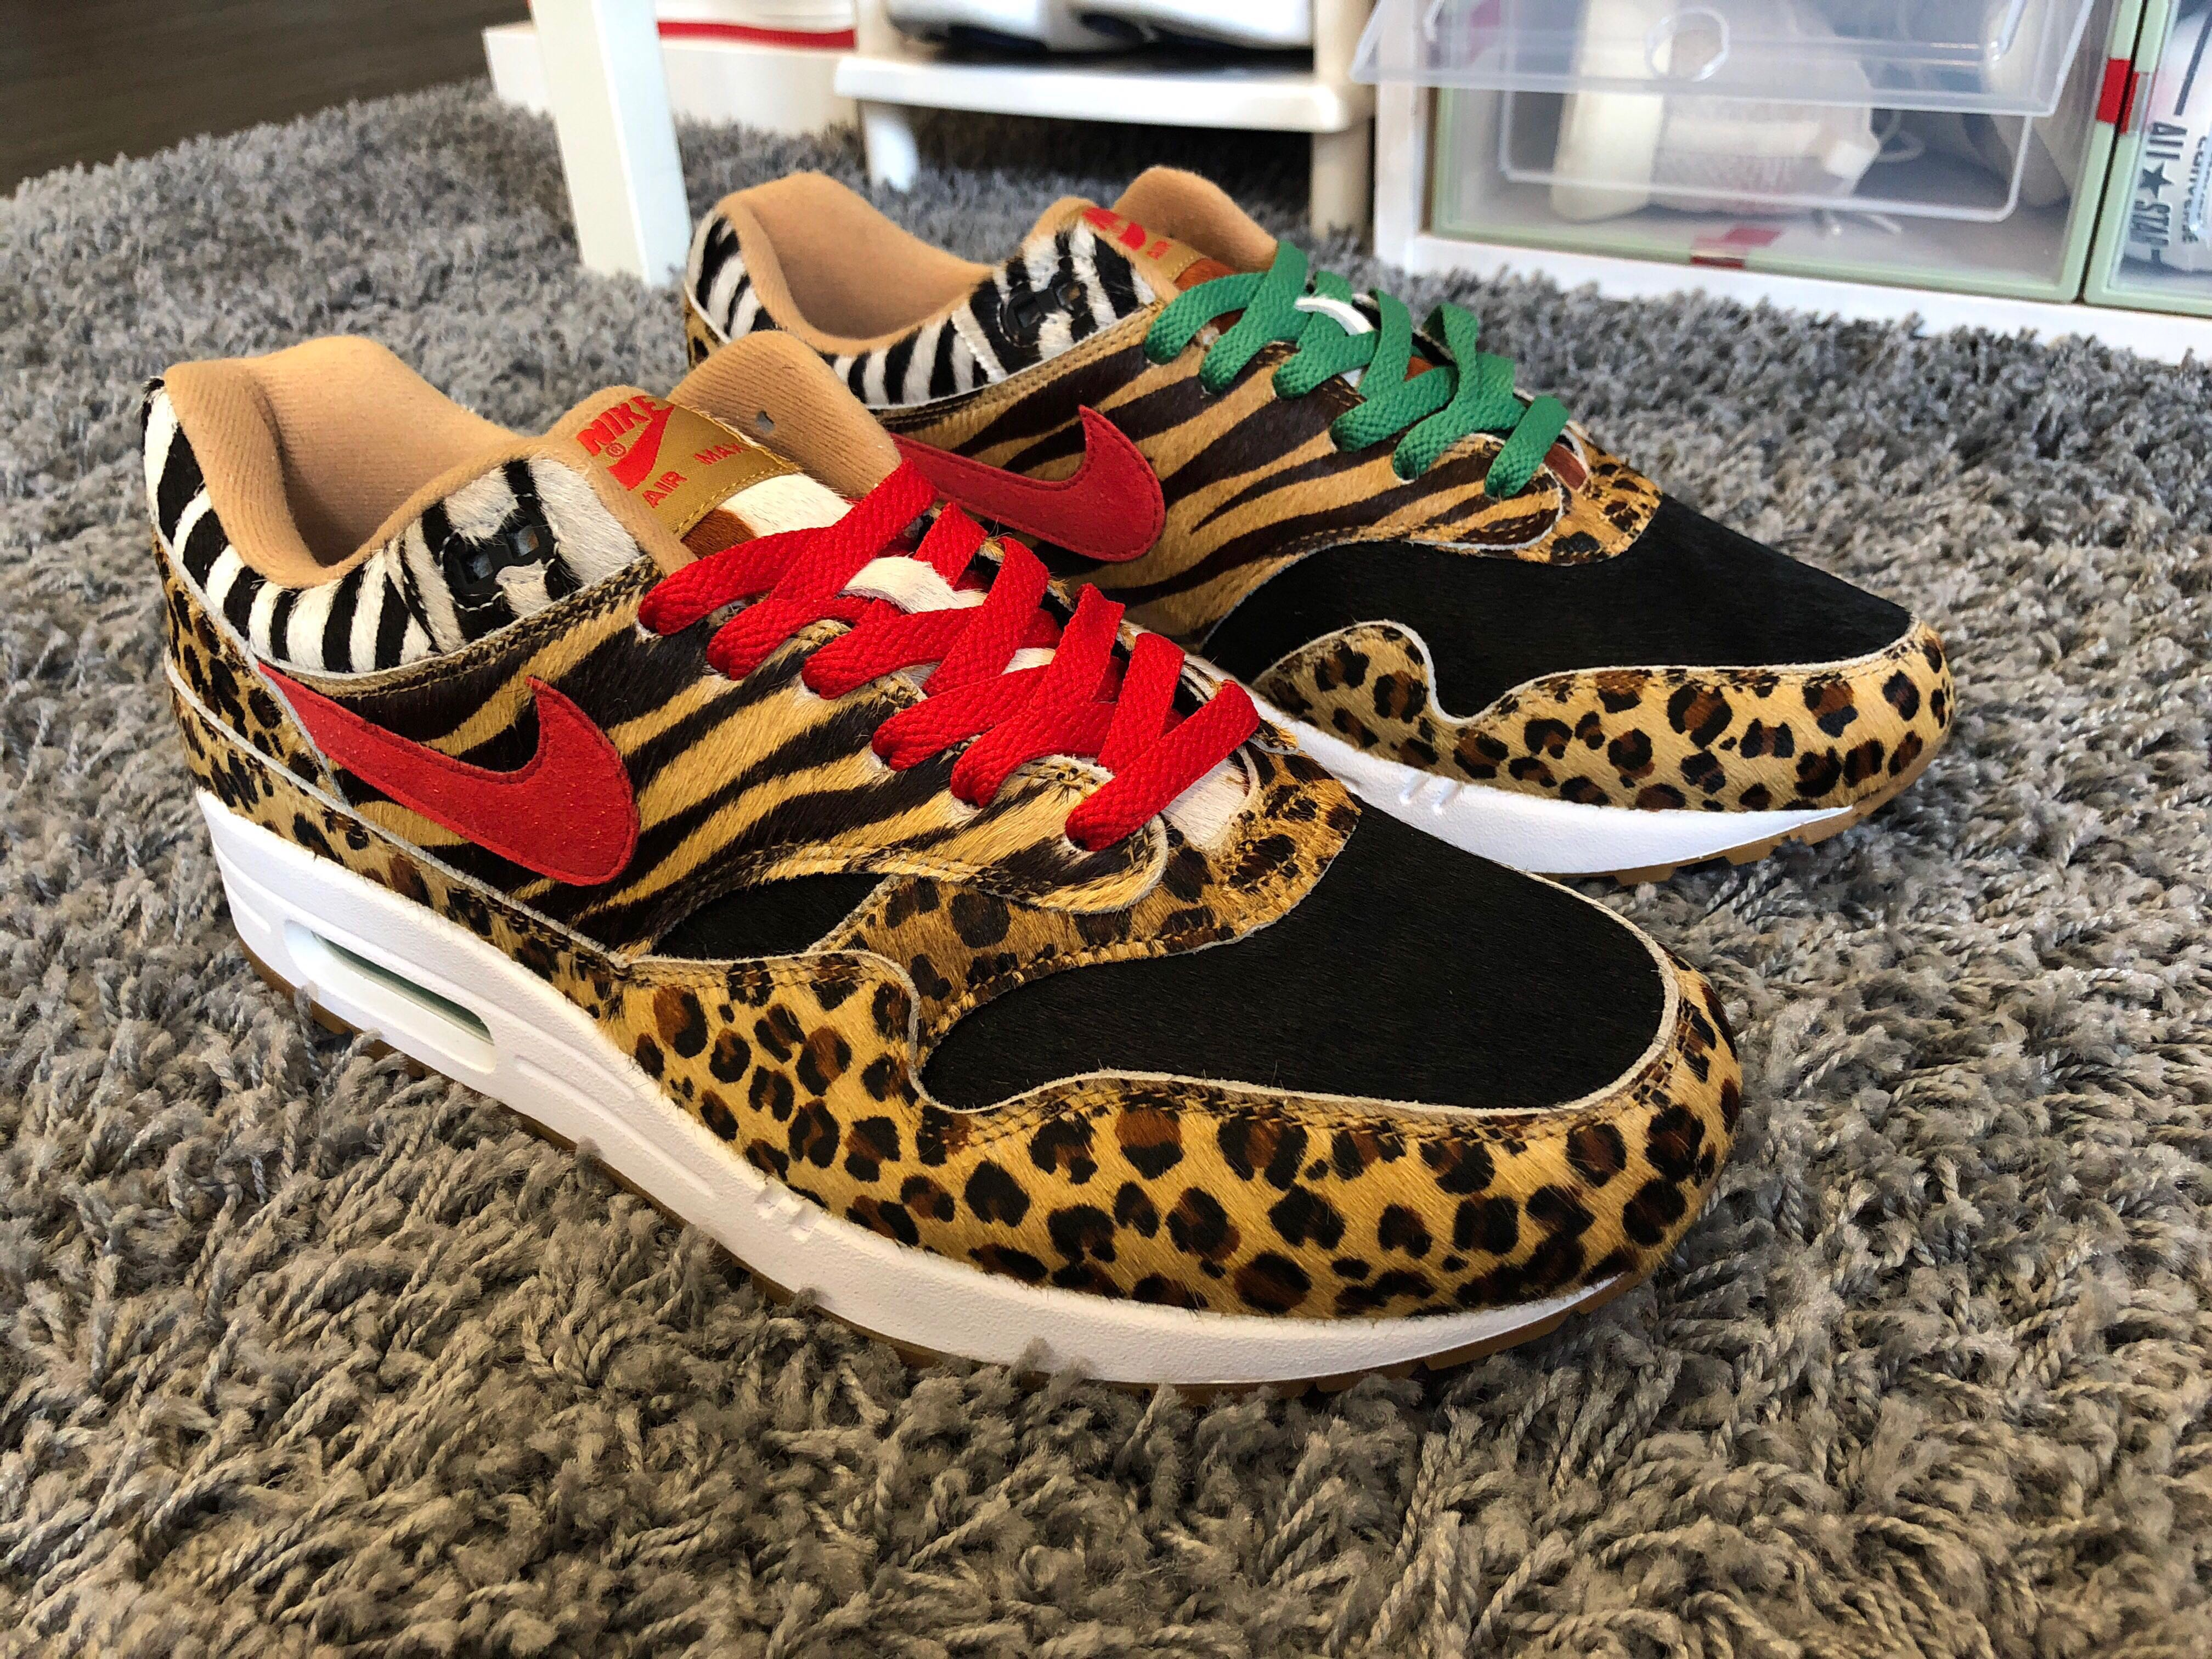 best authentic dbcdb 9dfbf Atmos Animal pack 2.0 air max 1 US11, Men s Fashion, Footwear ...